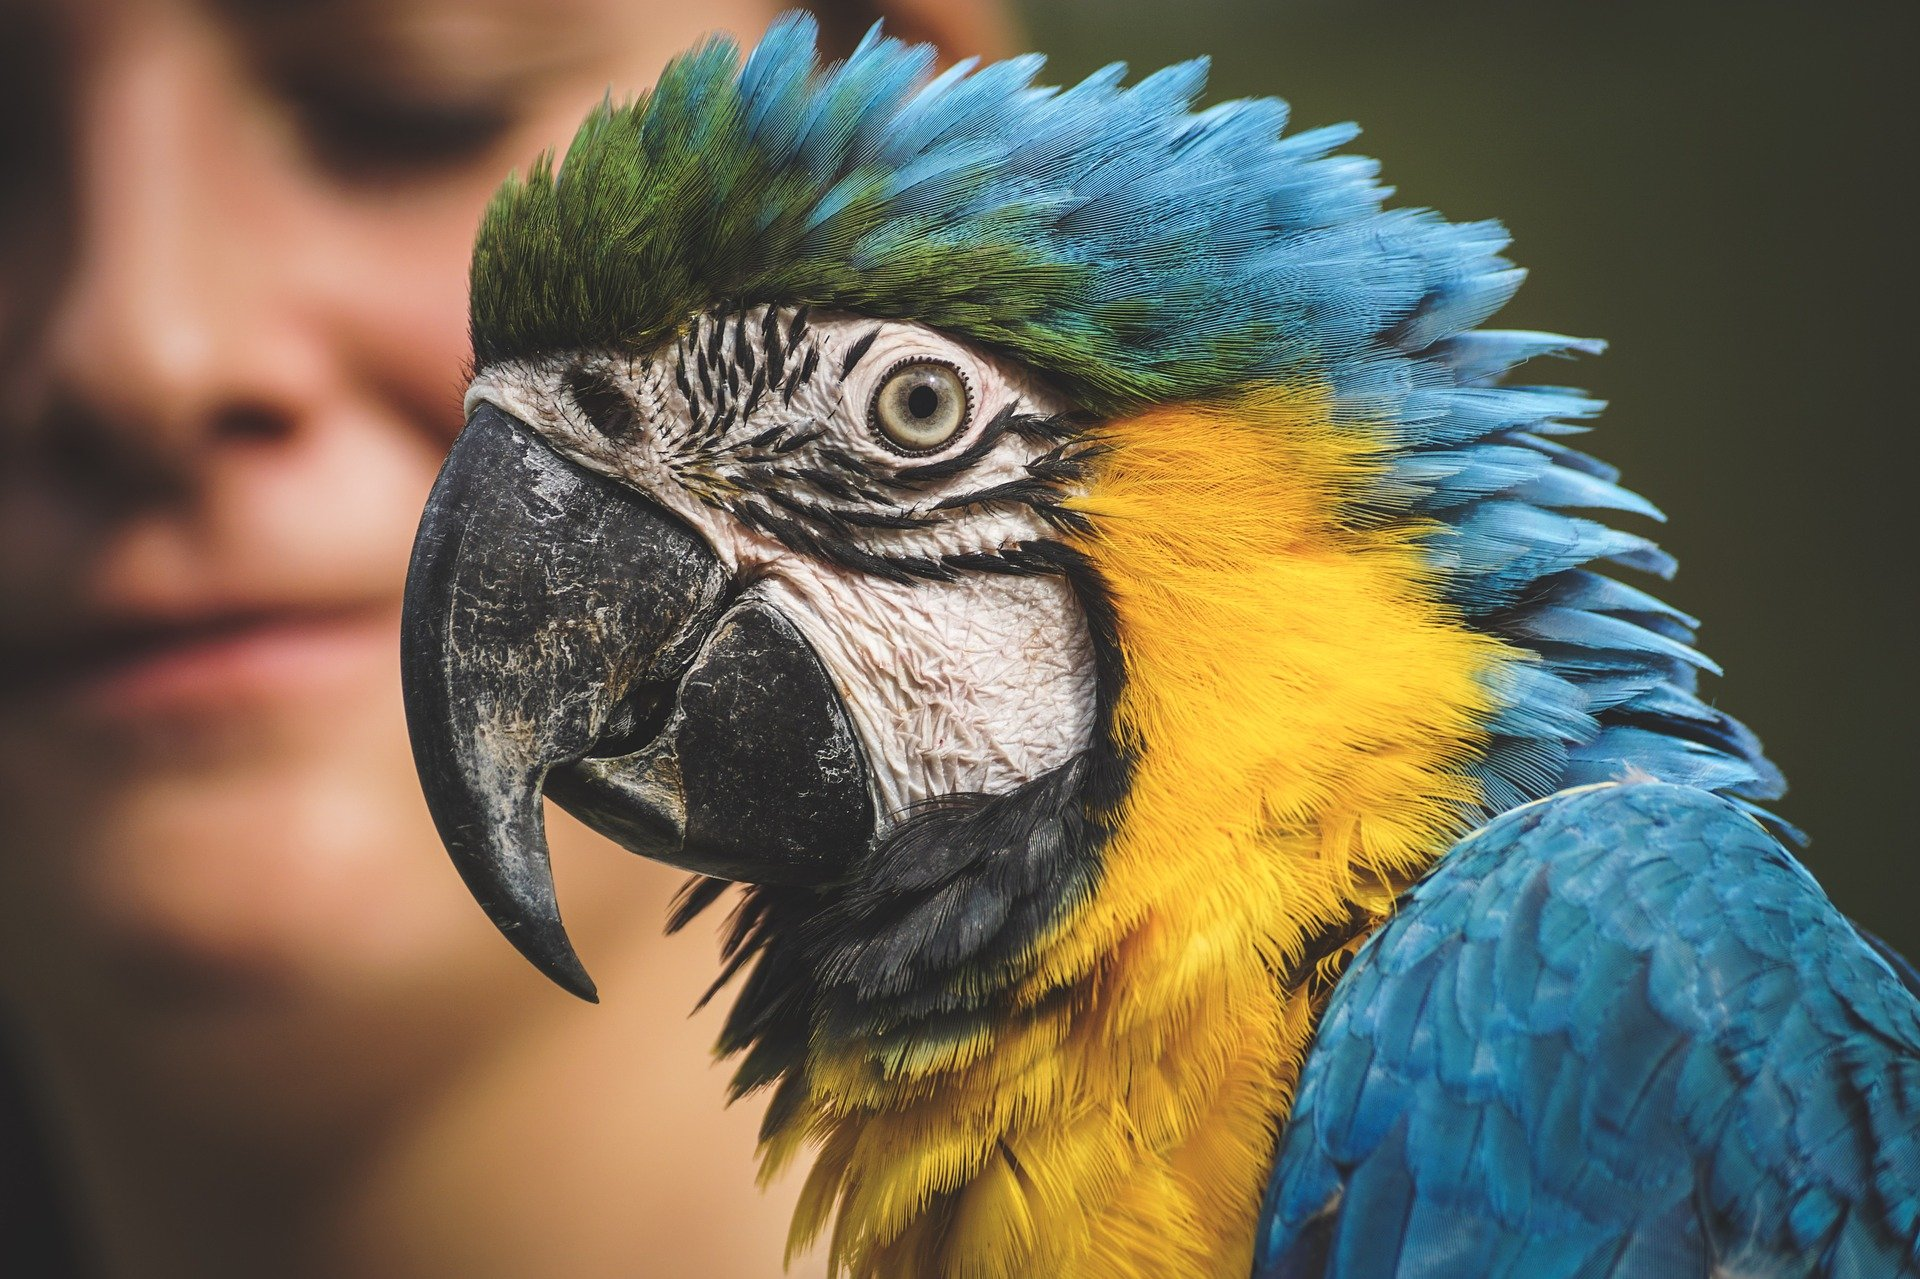 A facial close up of a macaw. | Photo: Pixabay.